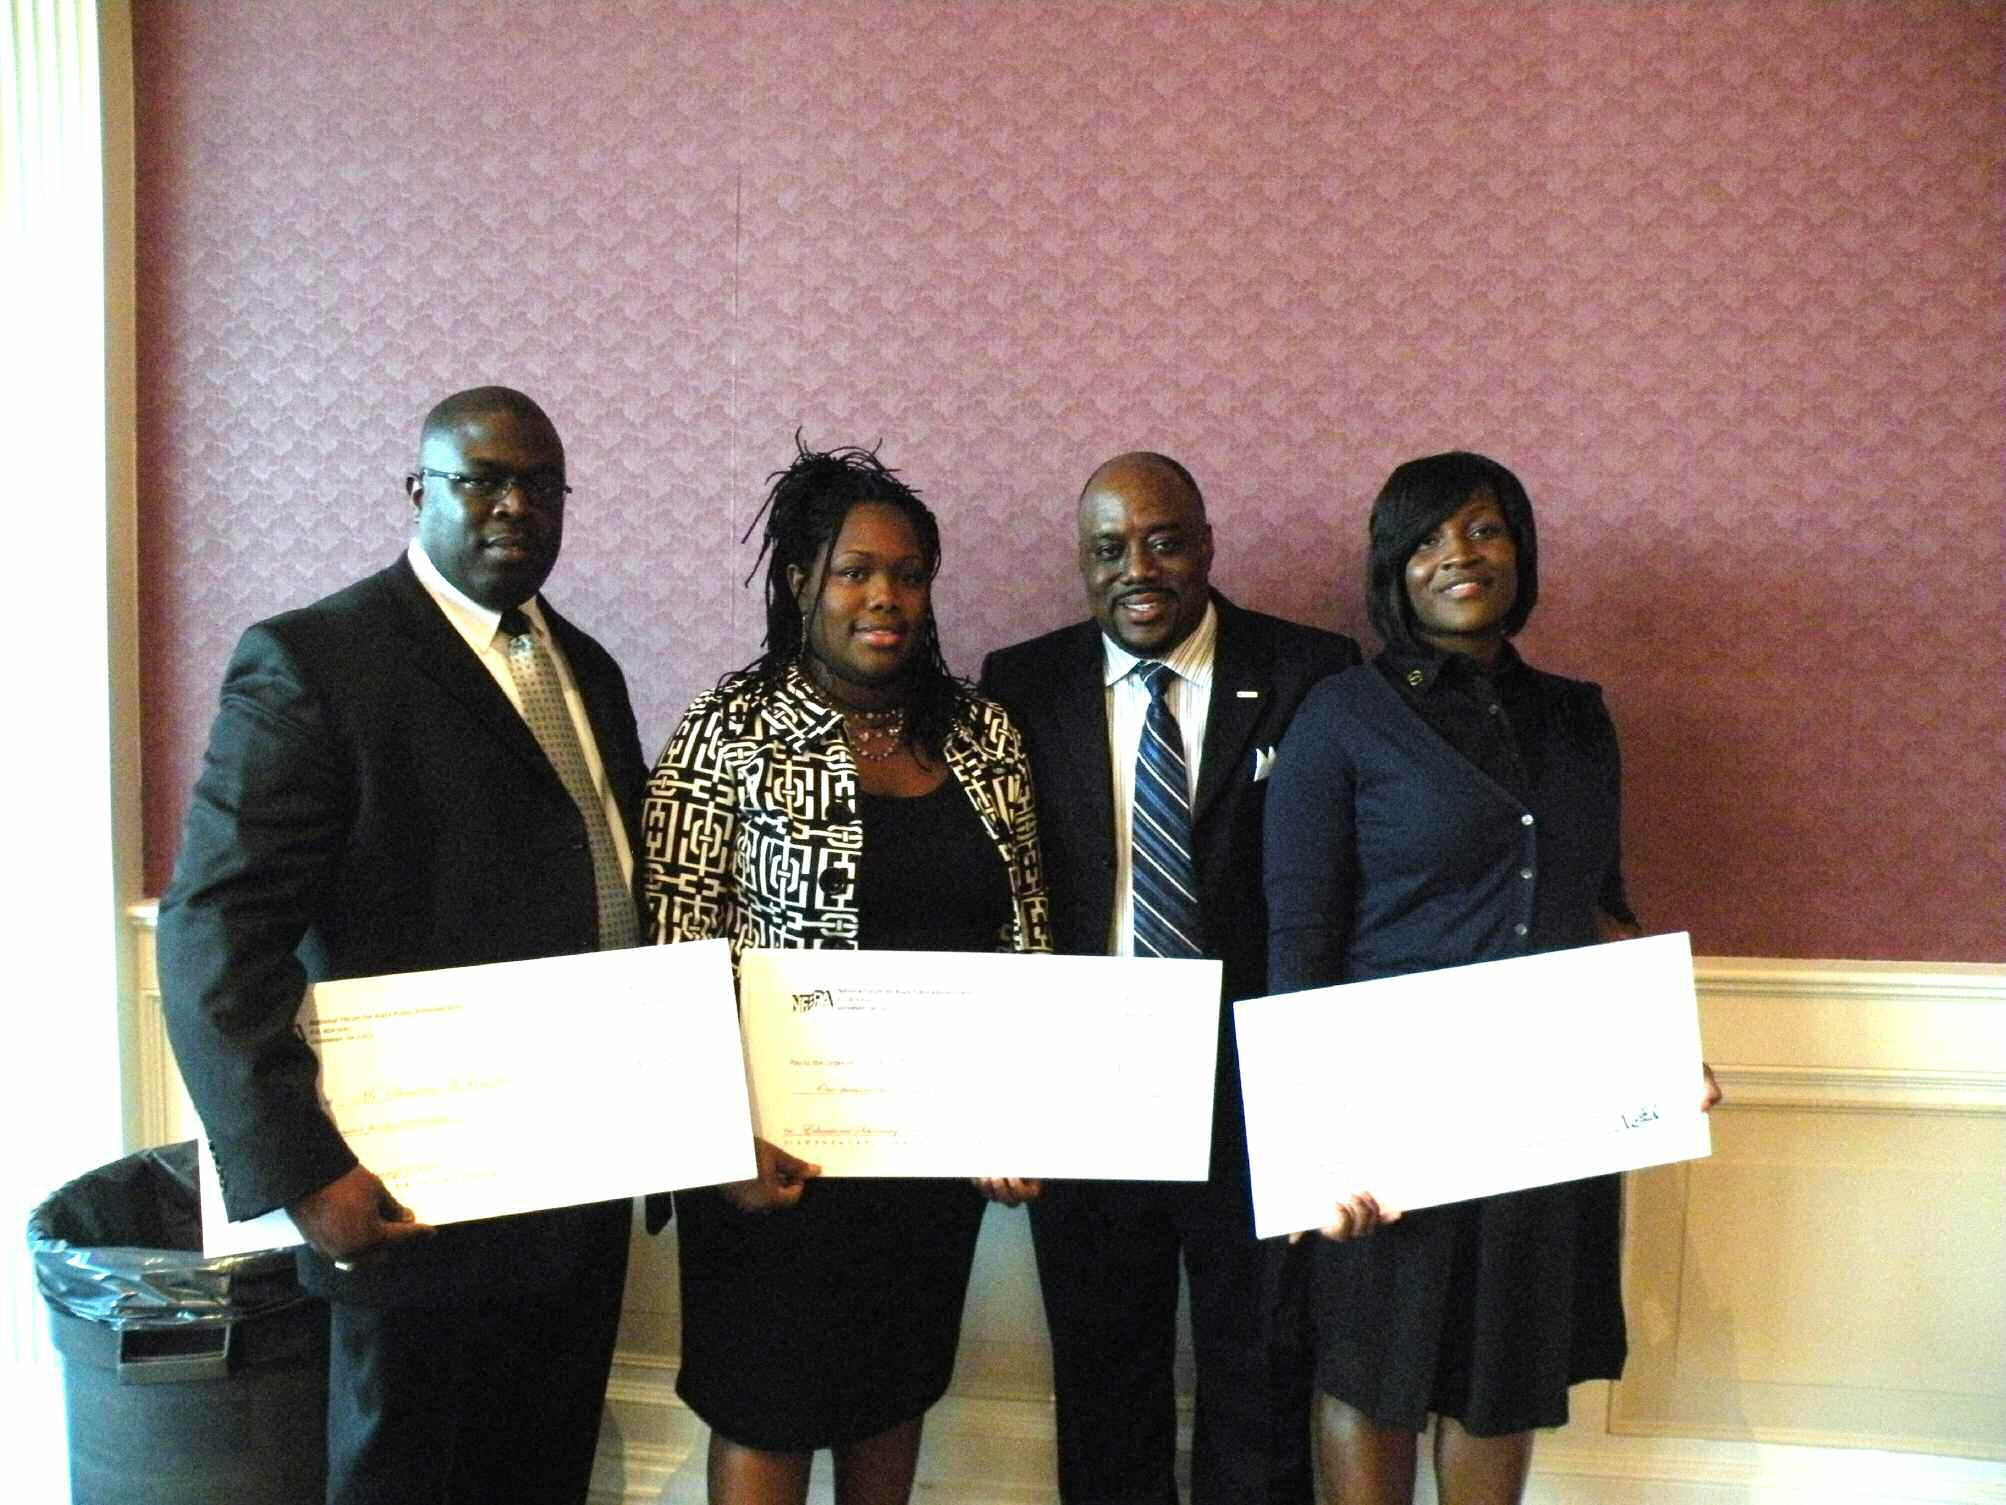 Pictured are scholarship recipients Shannon Holman, Ciarra M. Callis, Alderman Van Johnson II, President of the Savannah Metropolitan Chapter, NFBPA, and Whitney Parker.